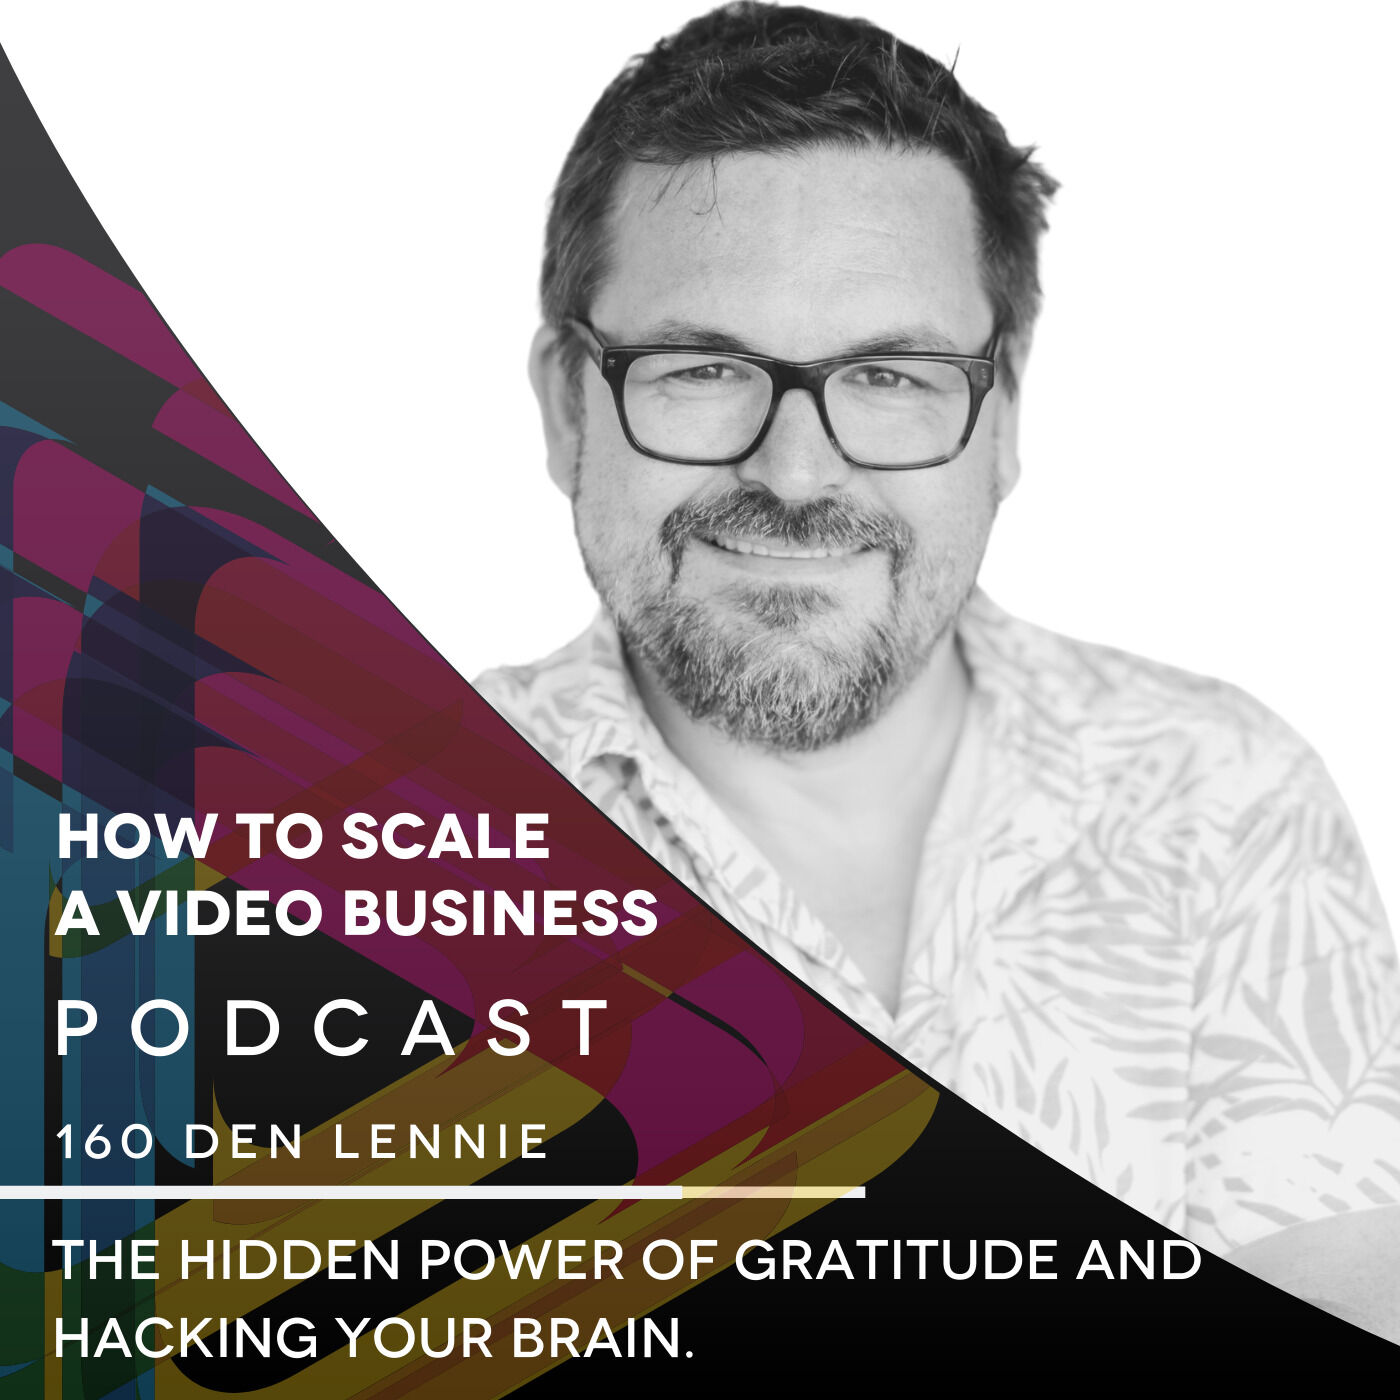 The hidden power of gratitude and hacking your brain. EP #160 - Den Lennie